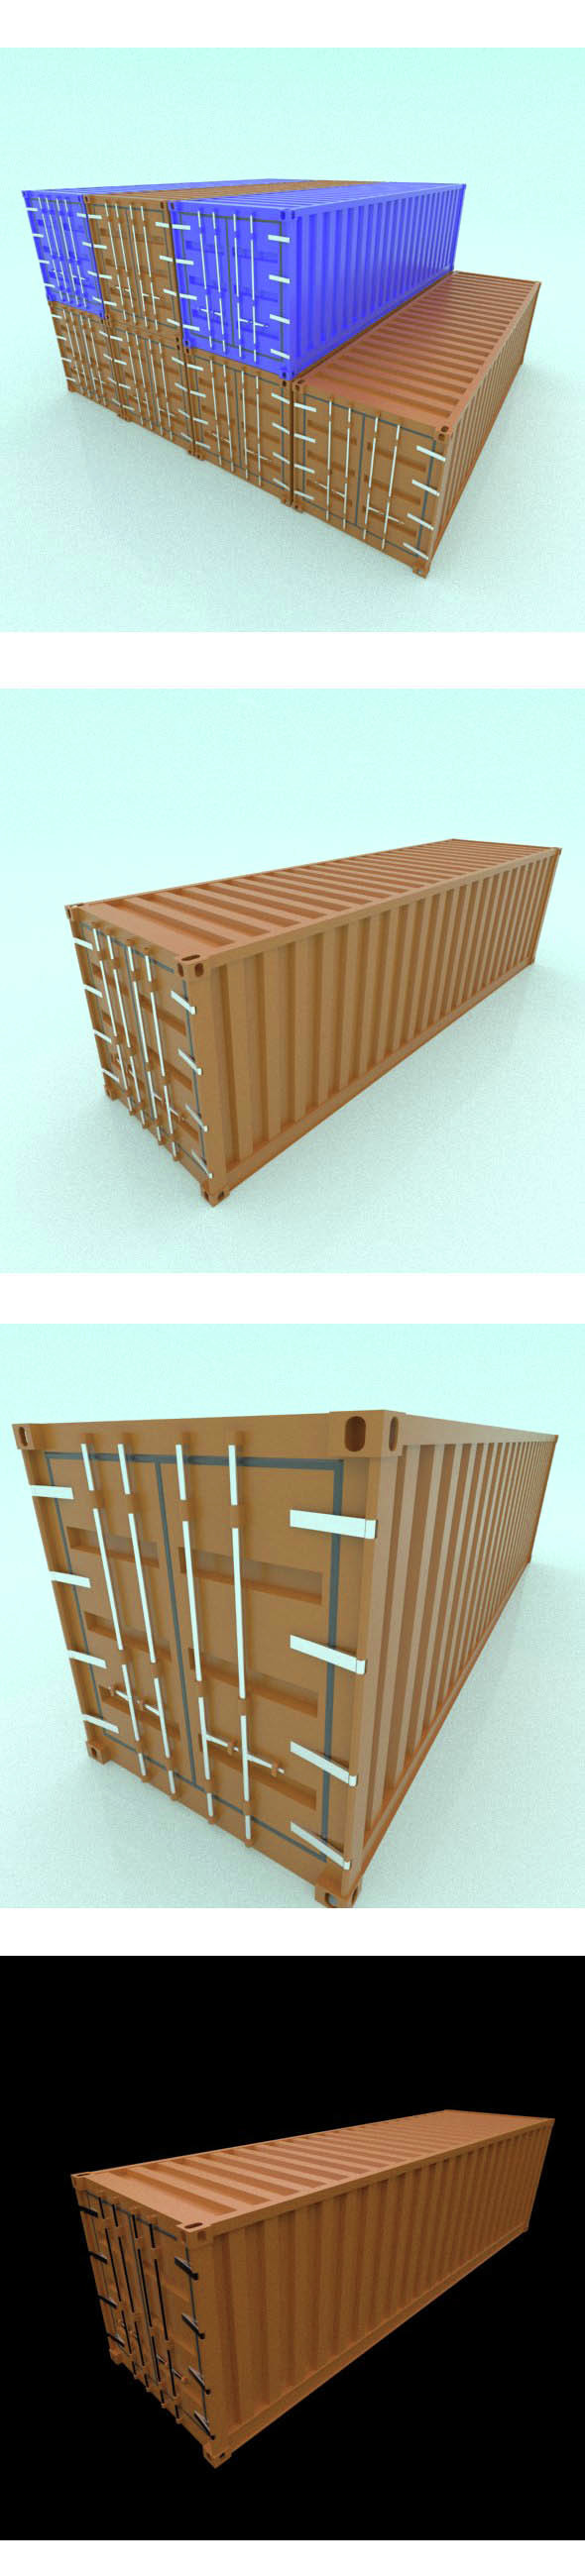 Shipping Container - 3DOcean Item for Sale